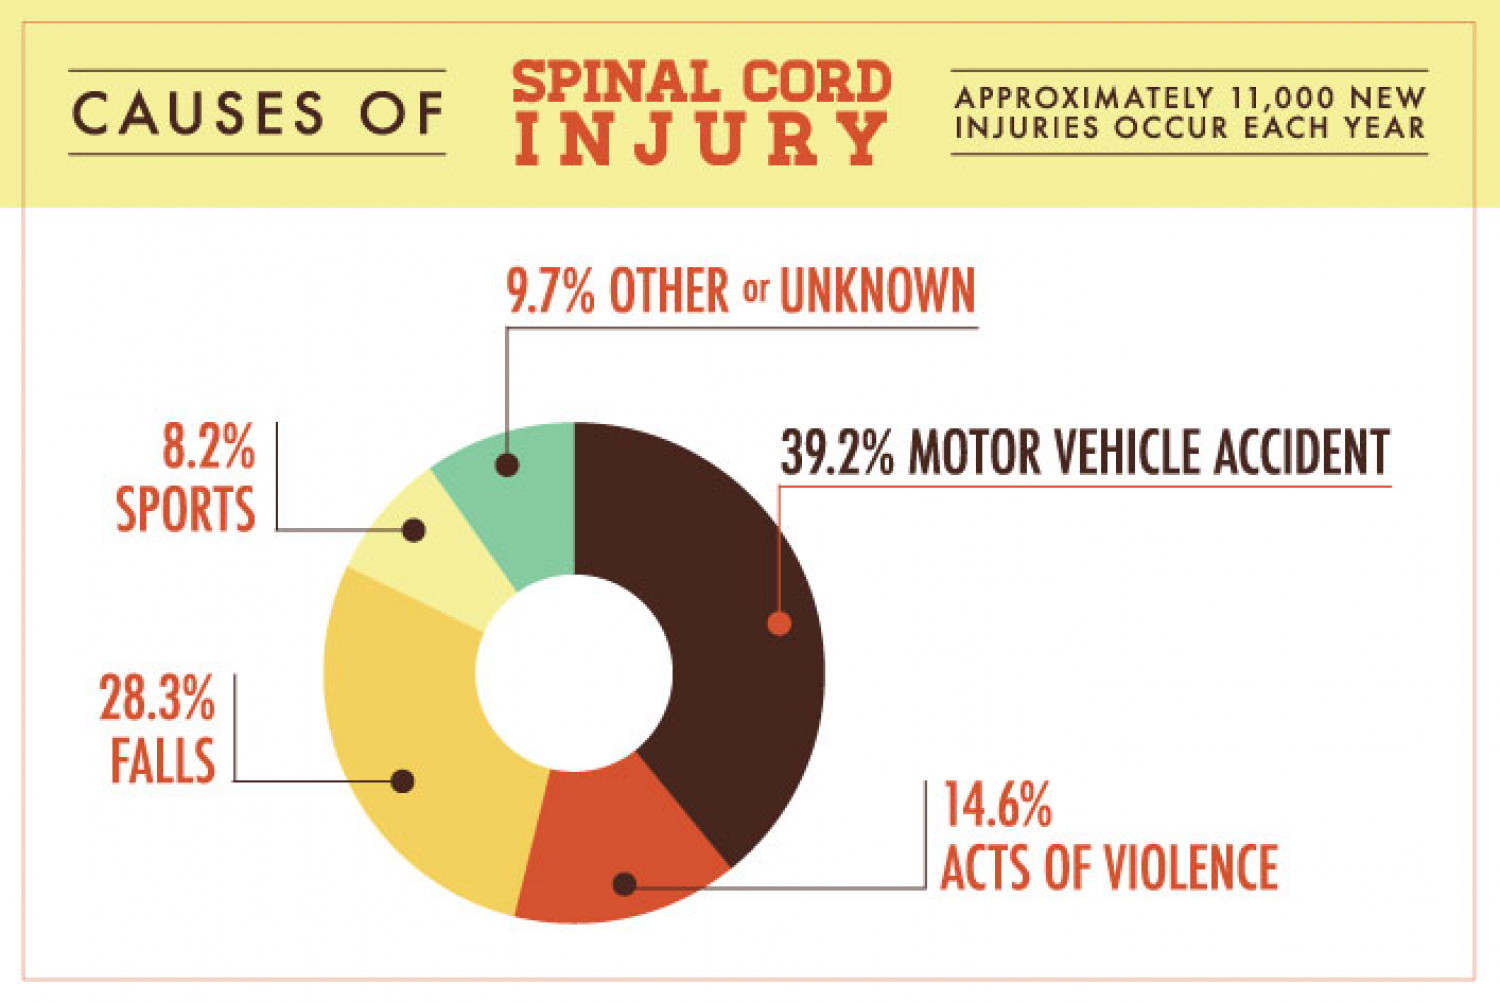 Spinal Cord Injury Infographic